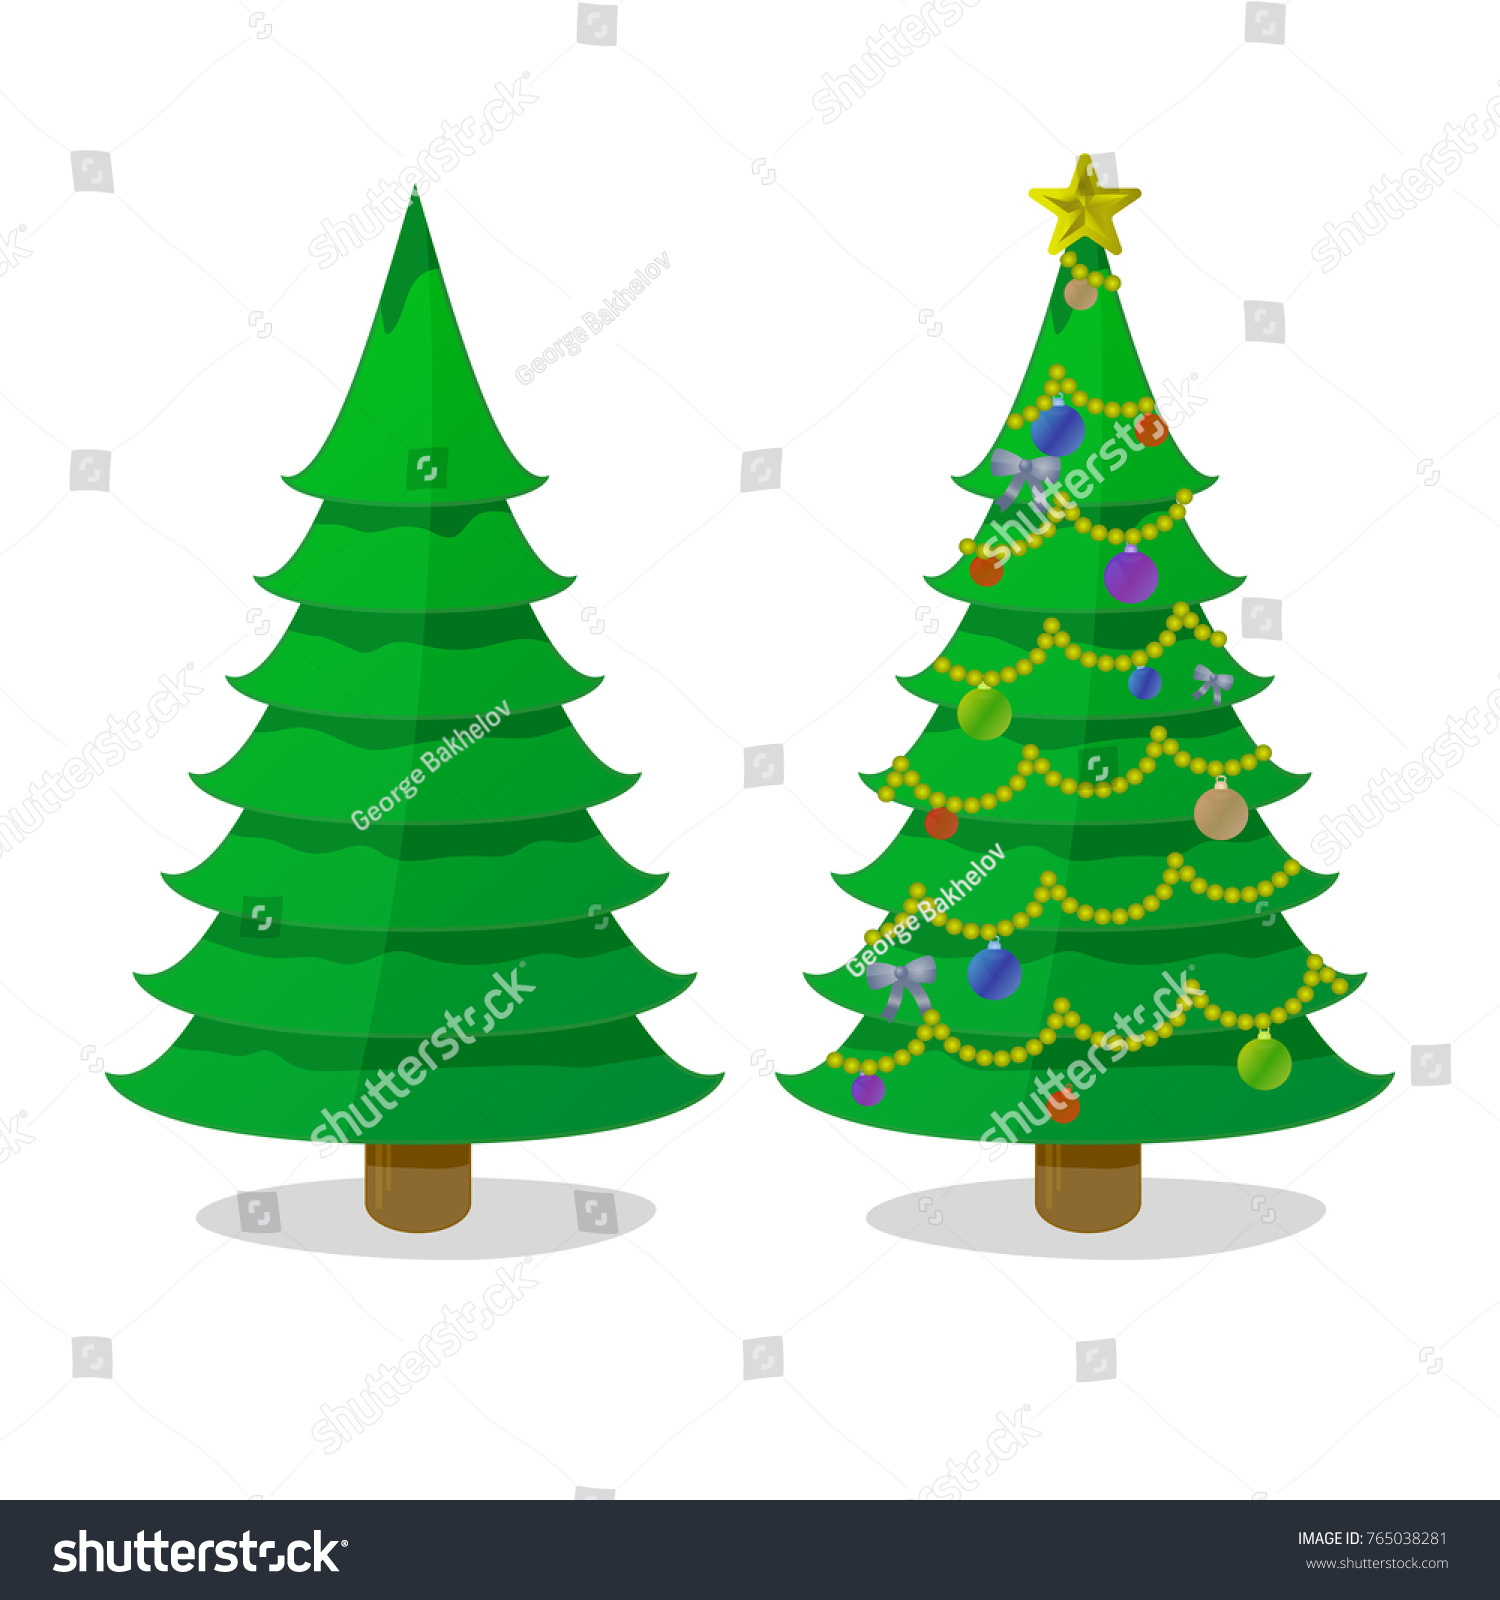 Undecorated Beautifully Decorated Christmas Trees Two Stock Vector Royalty Free 765038281 Single plug power tree pole. https www shutterstock com image vector undecorated beautifully decorated christmas trees two 765038281